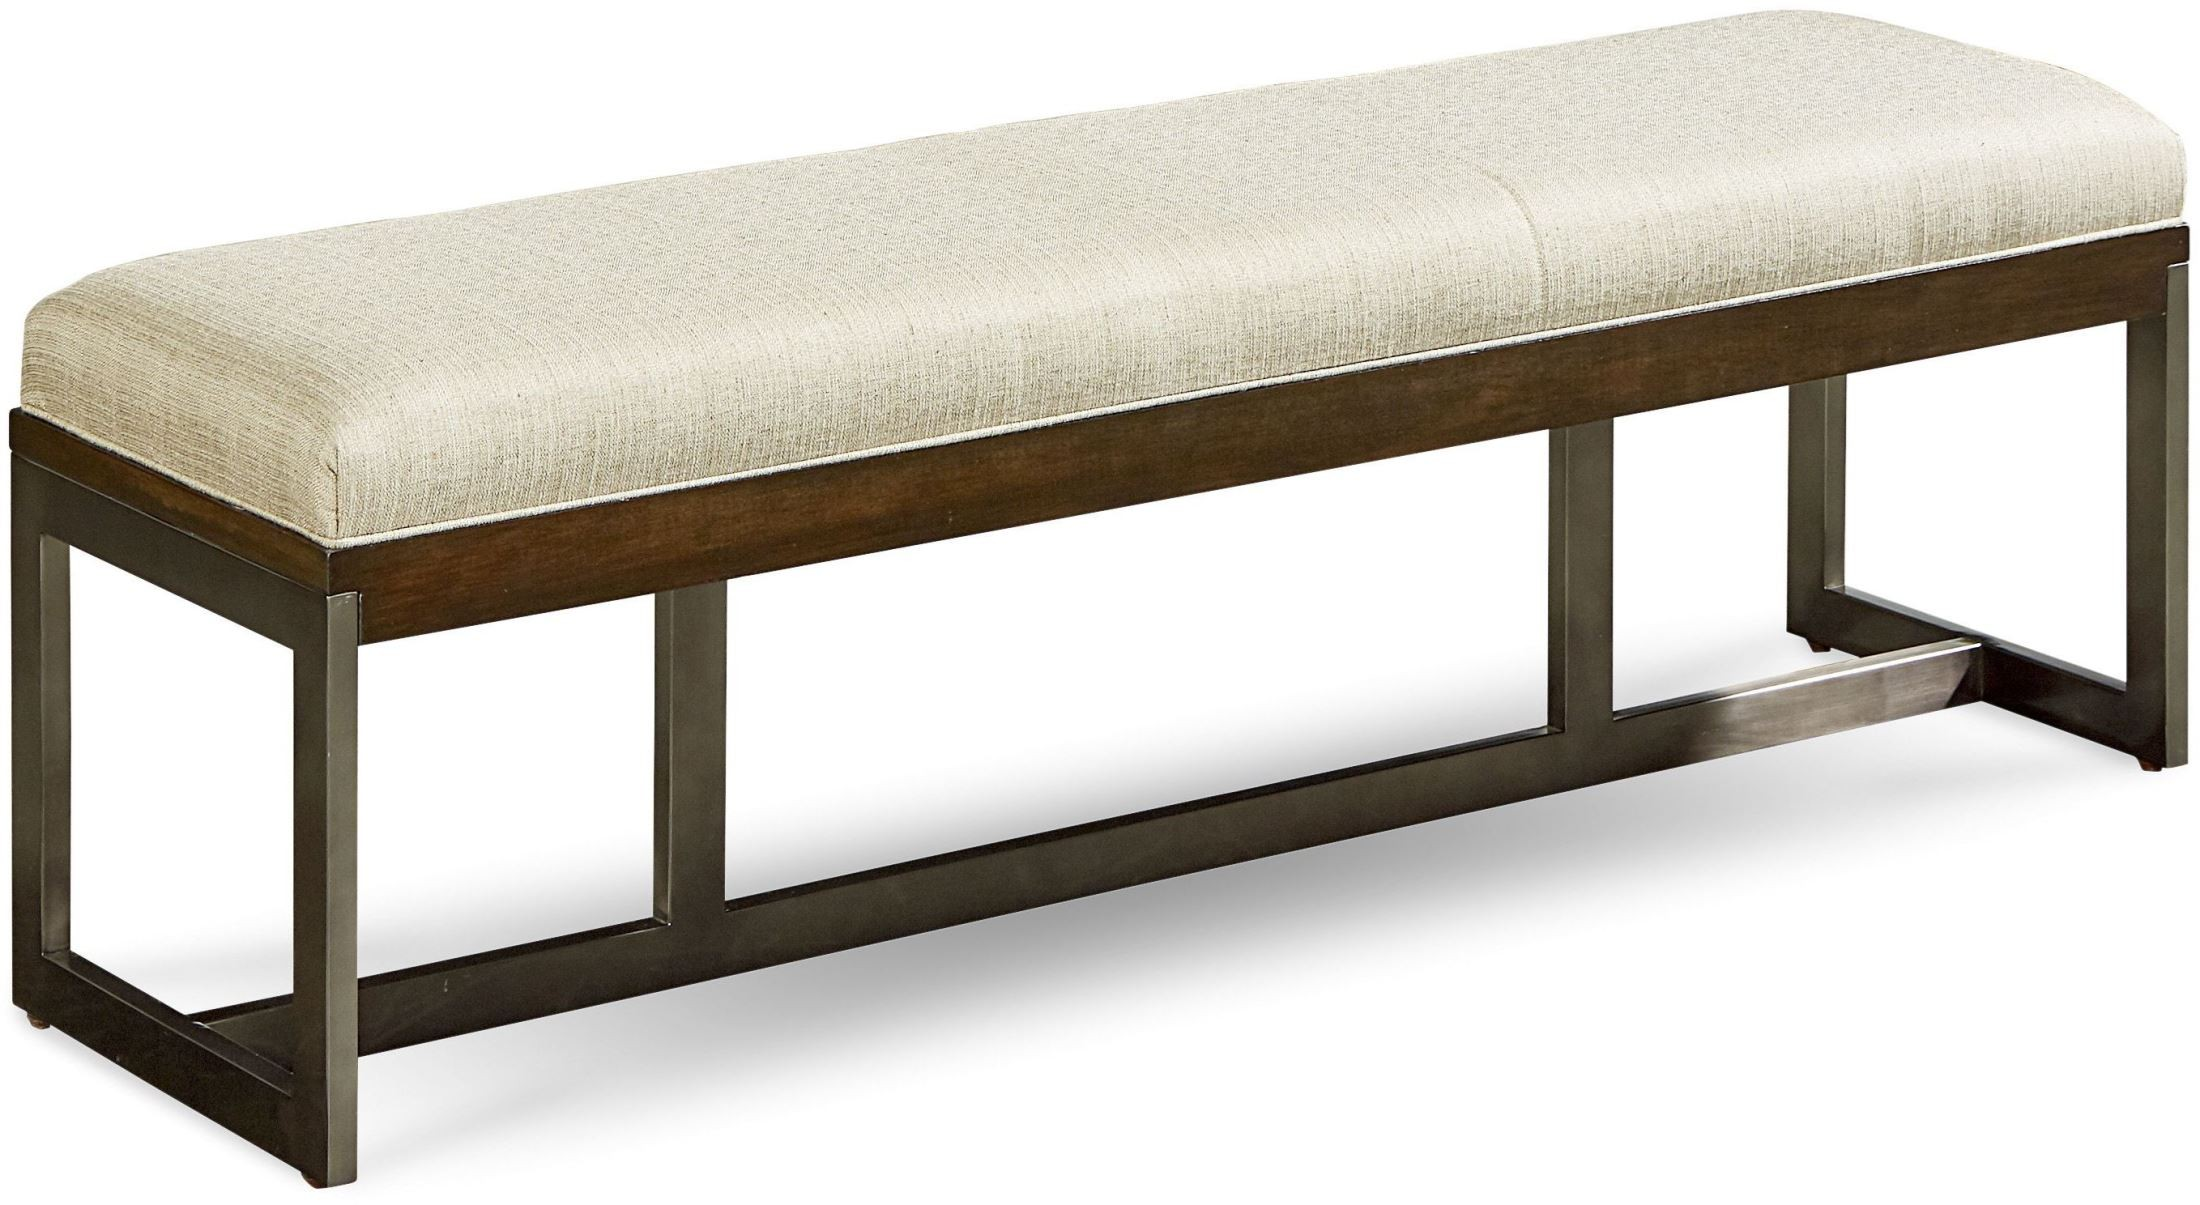 Neville Penumbra Espresso Bed Bench From Art Coleman Furniture